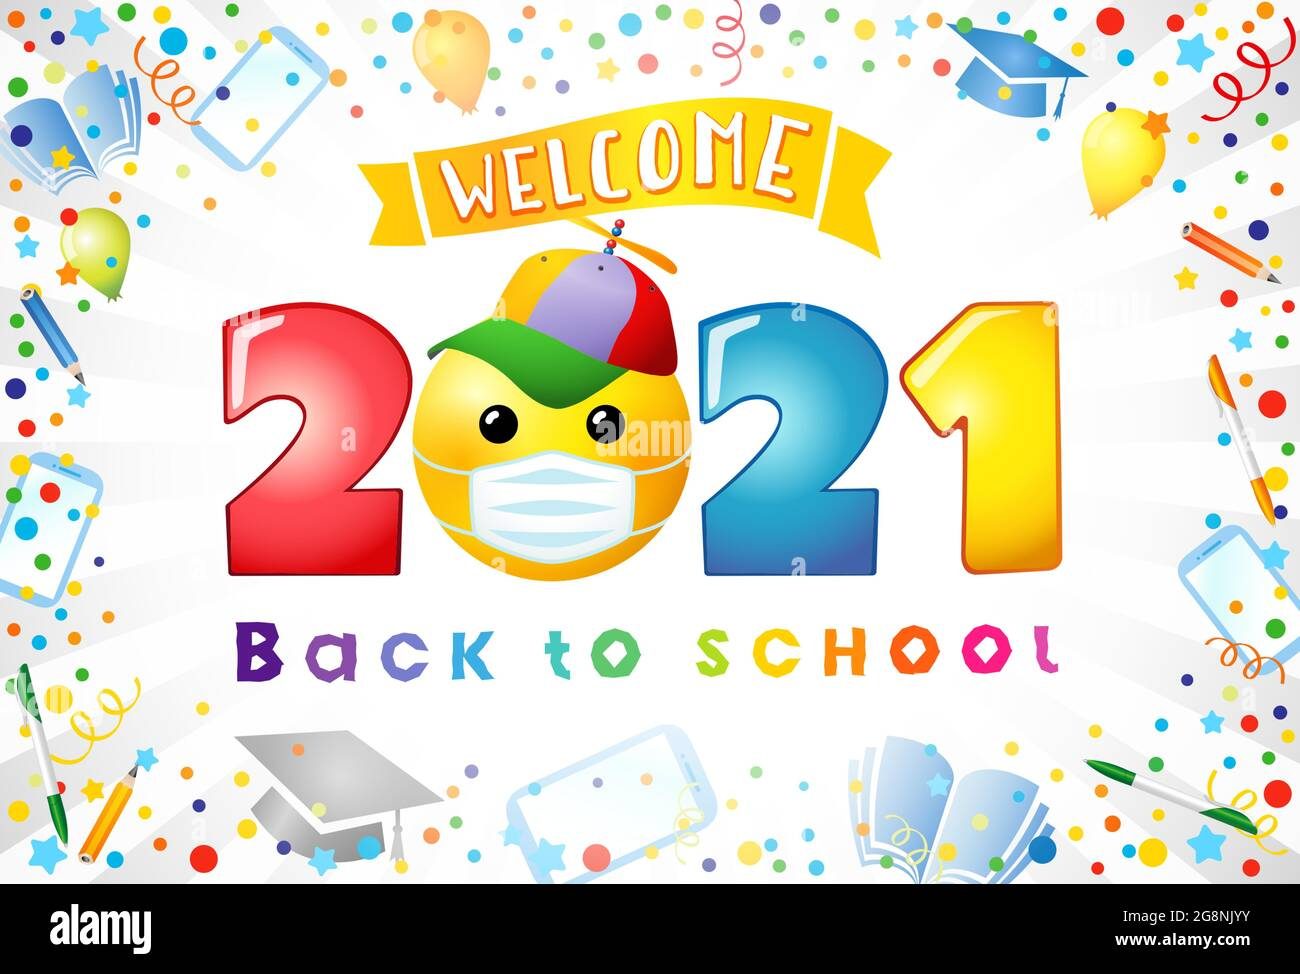 Welcome Smile Stock Vector Images - Alamy